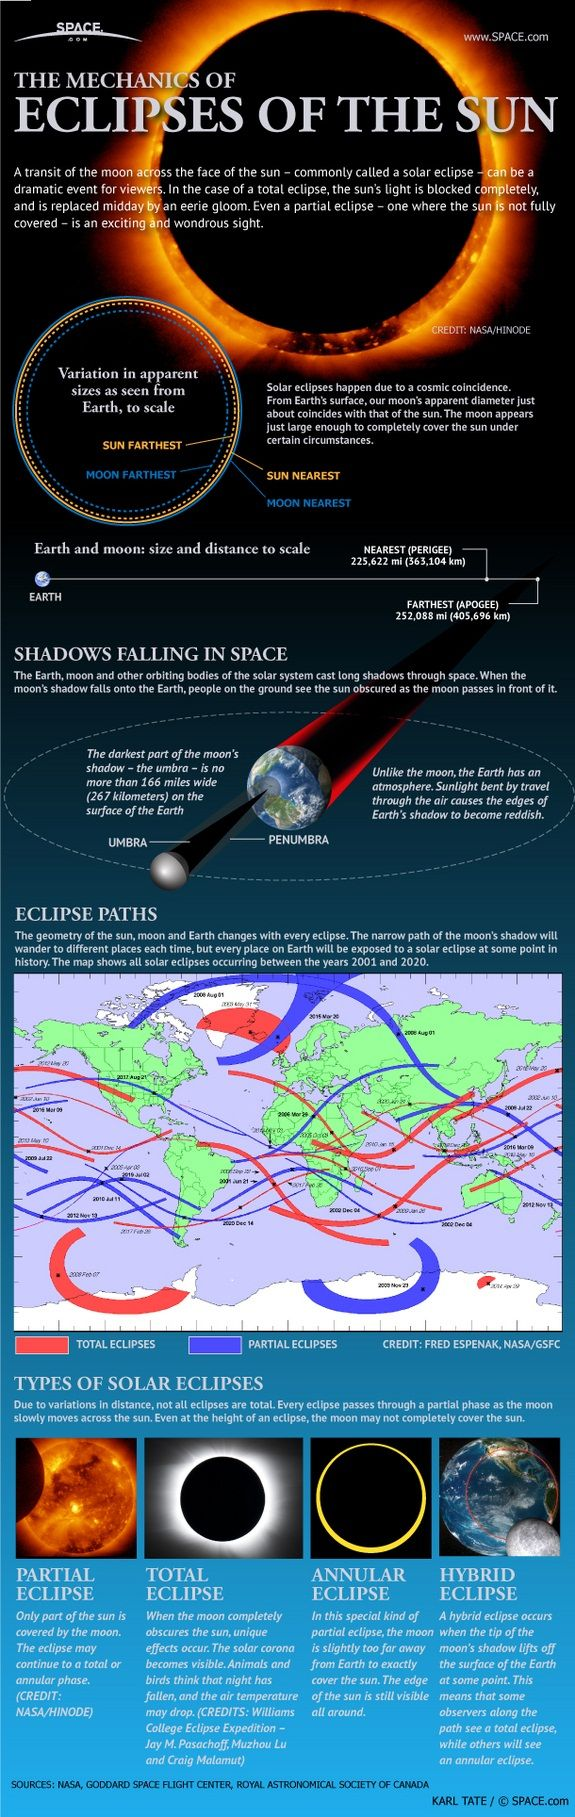 The next solar eclipse is in 2024! Check out this great infographic on the mechanics of solar eclipses